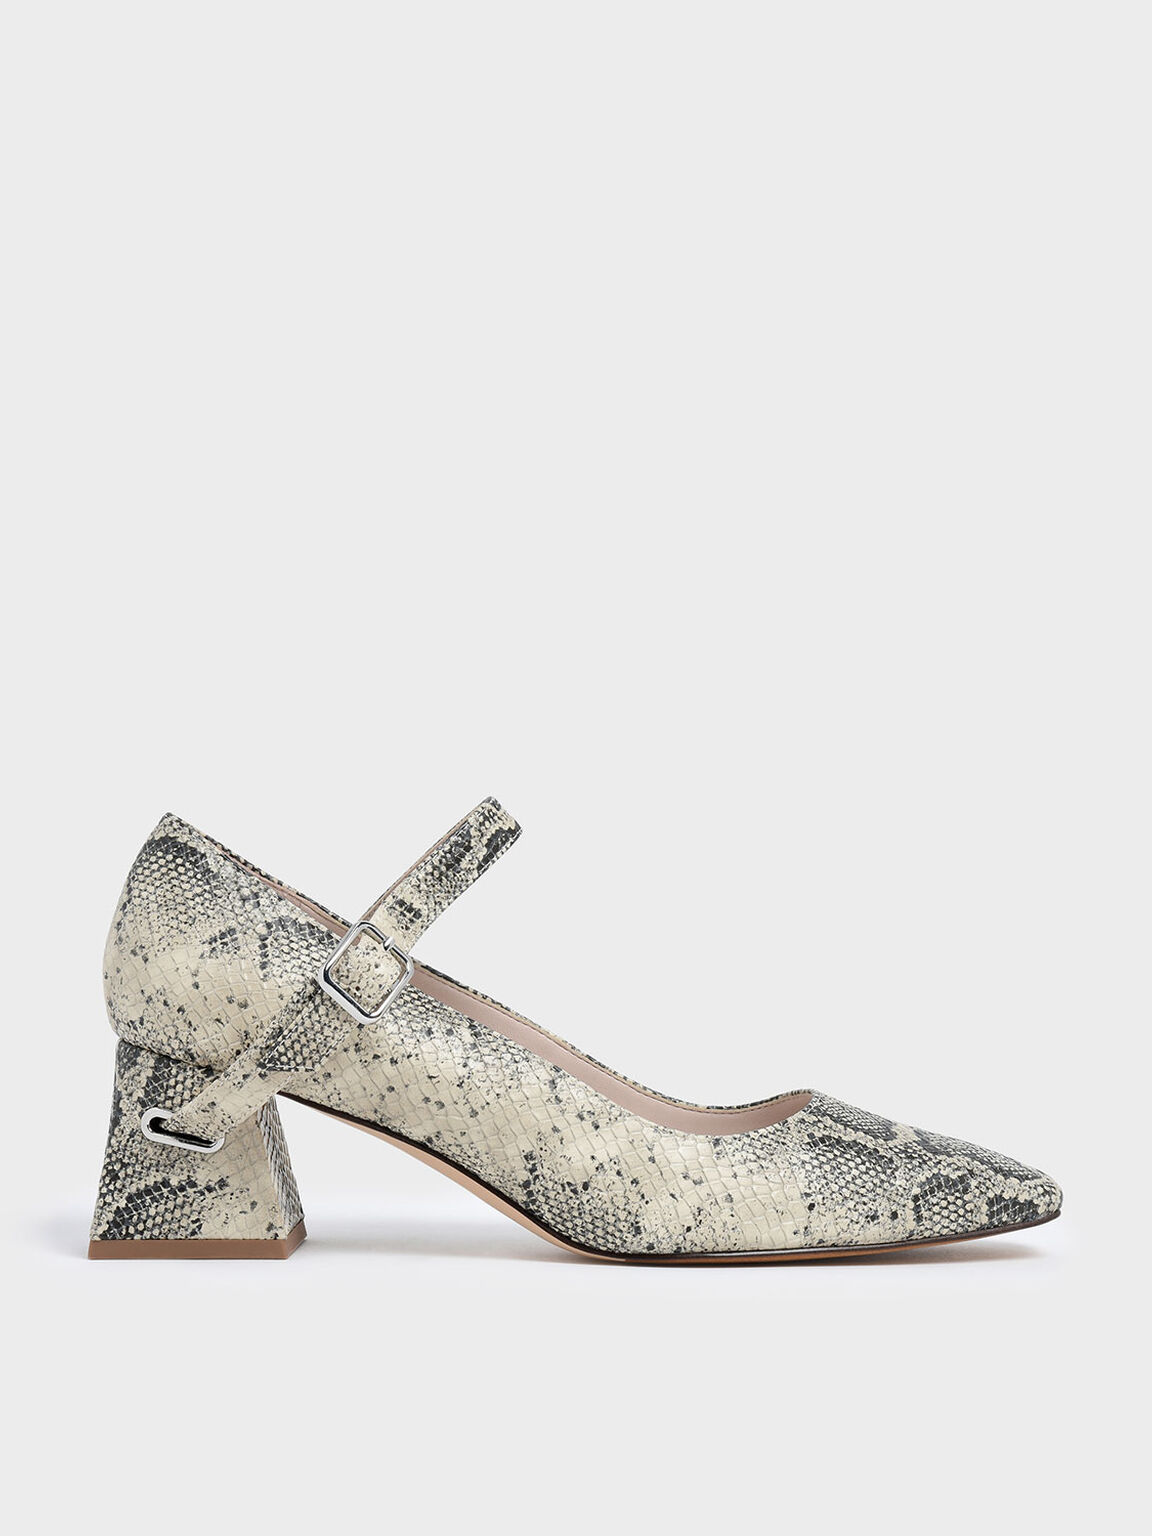 Snake Print Flare Block Heel Mary Jane Pumps, Grey, hi-res